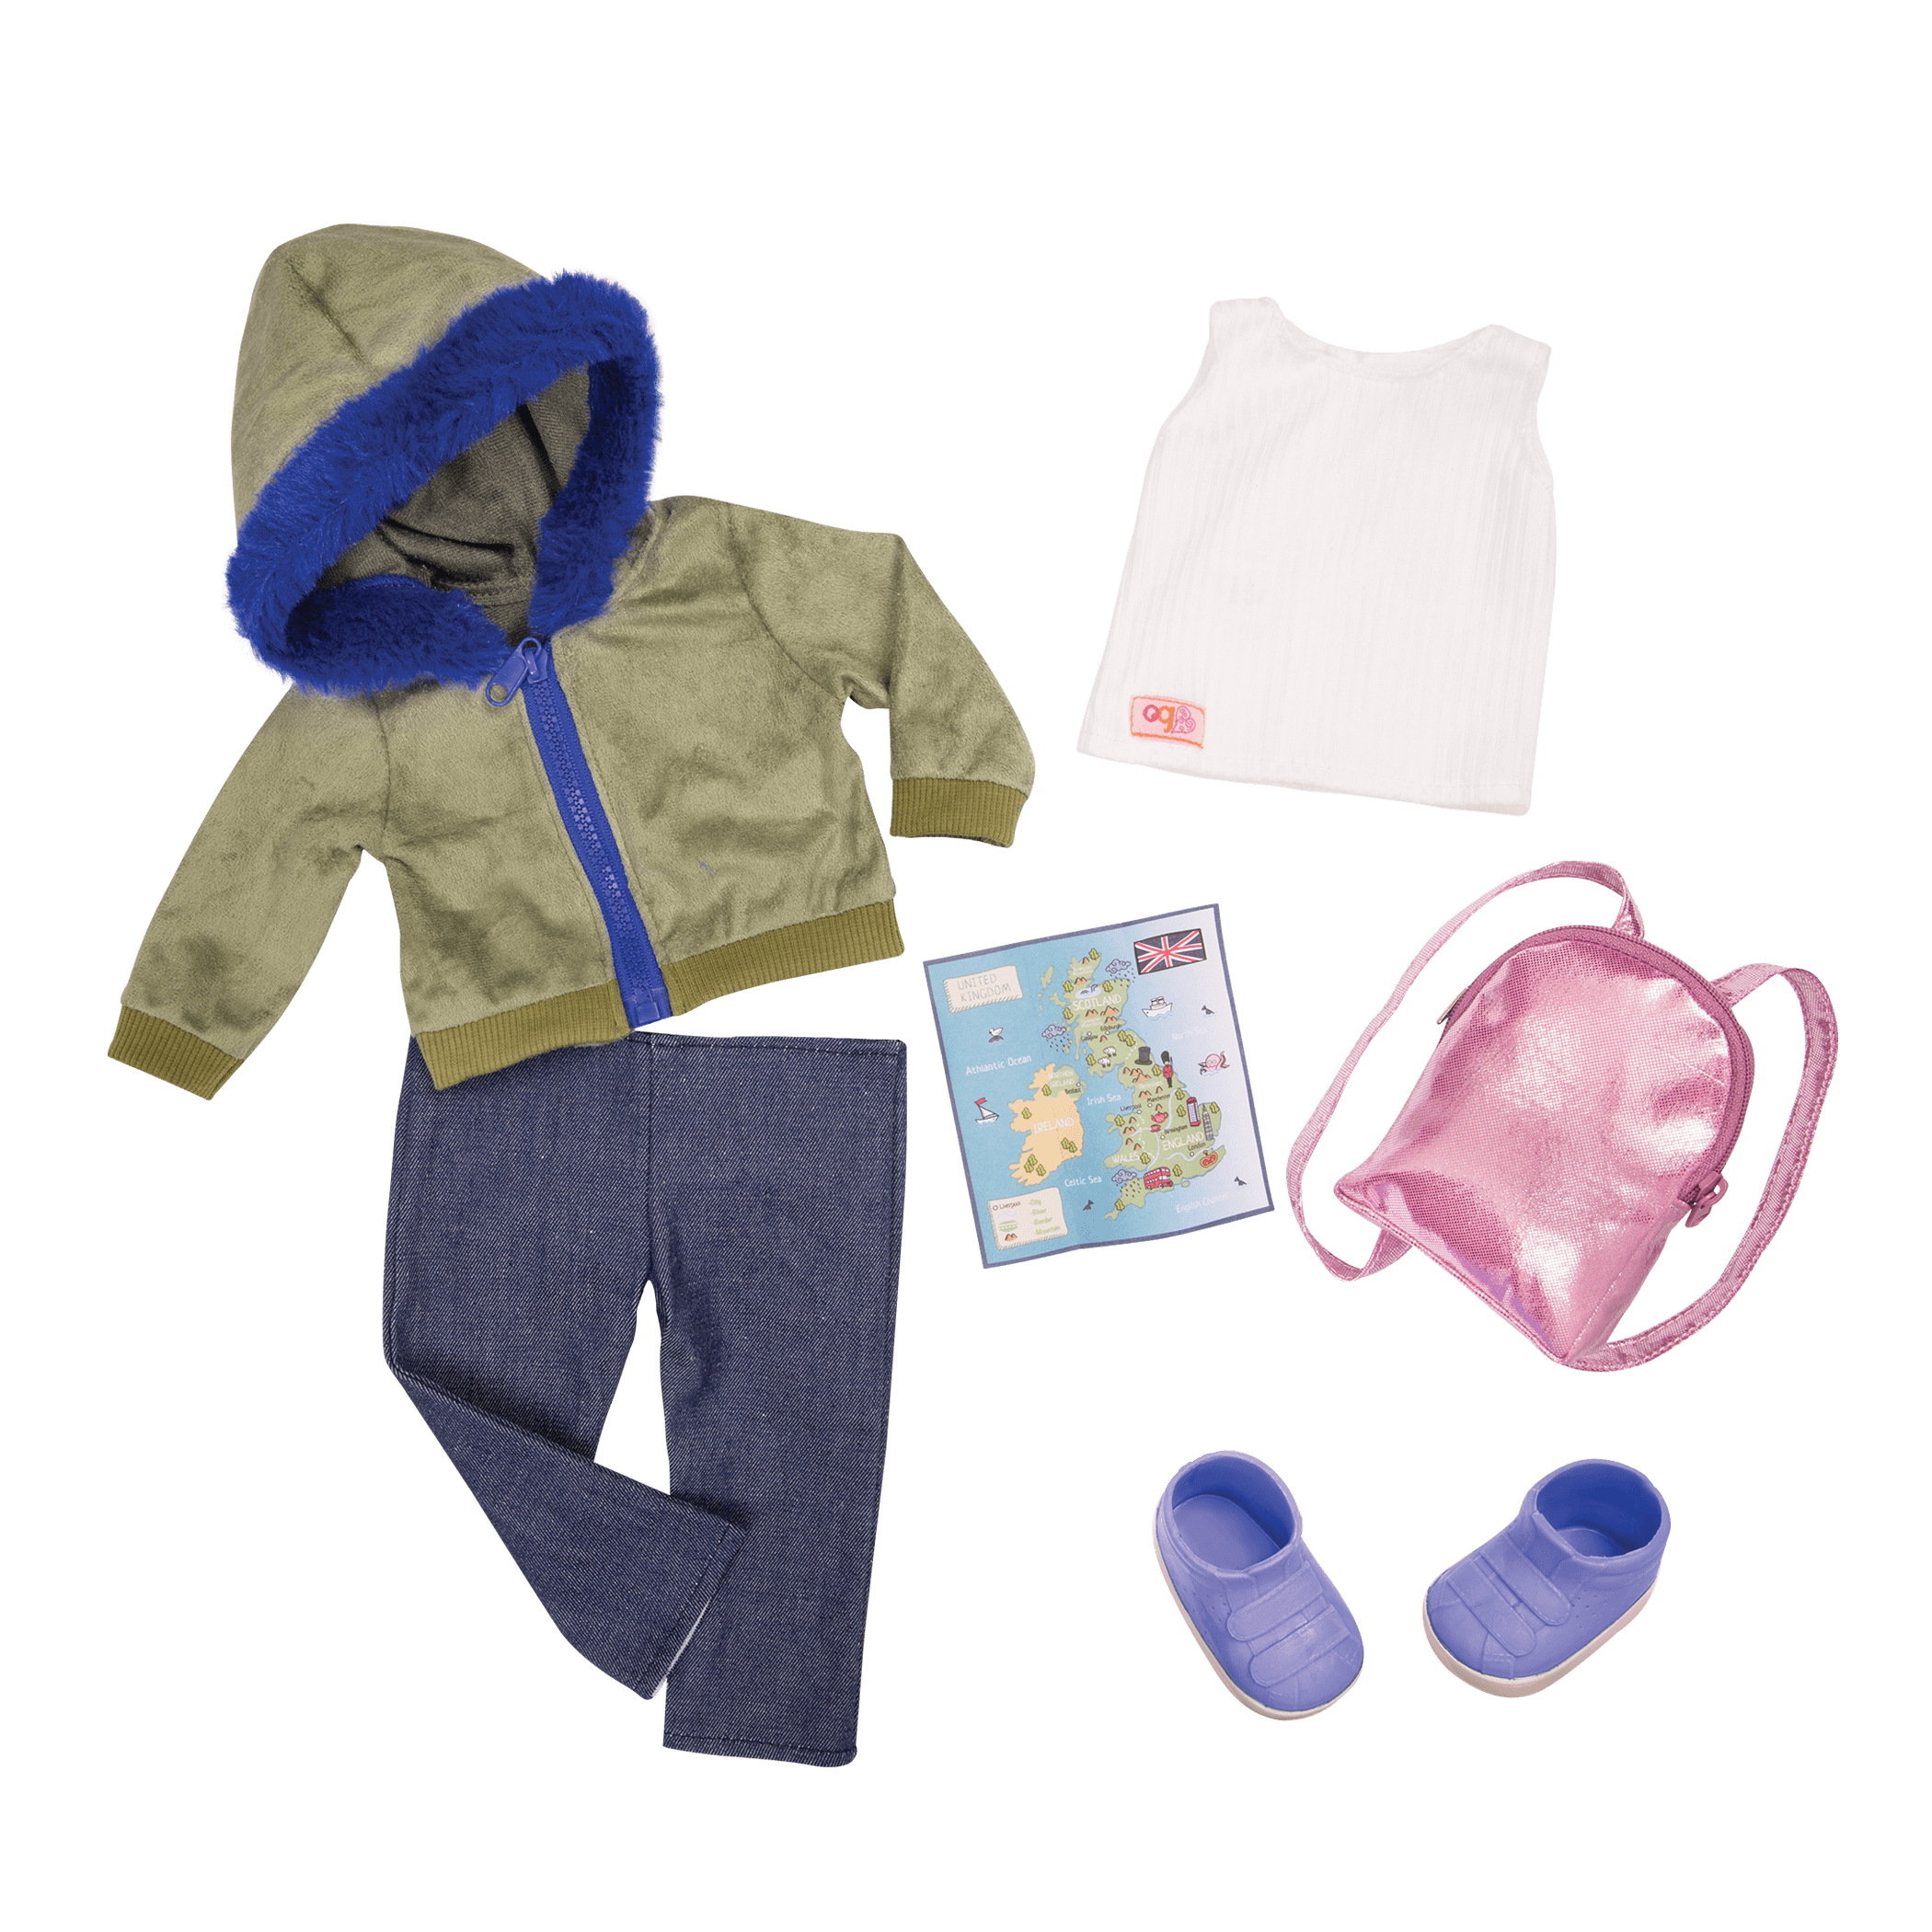 Warm Wayfarer Travel Outfit 18-inch Dolls